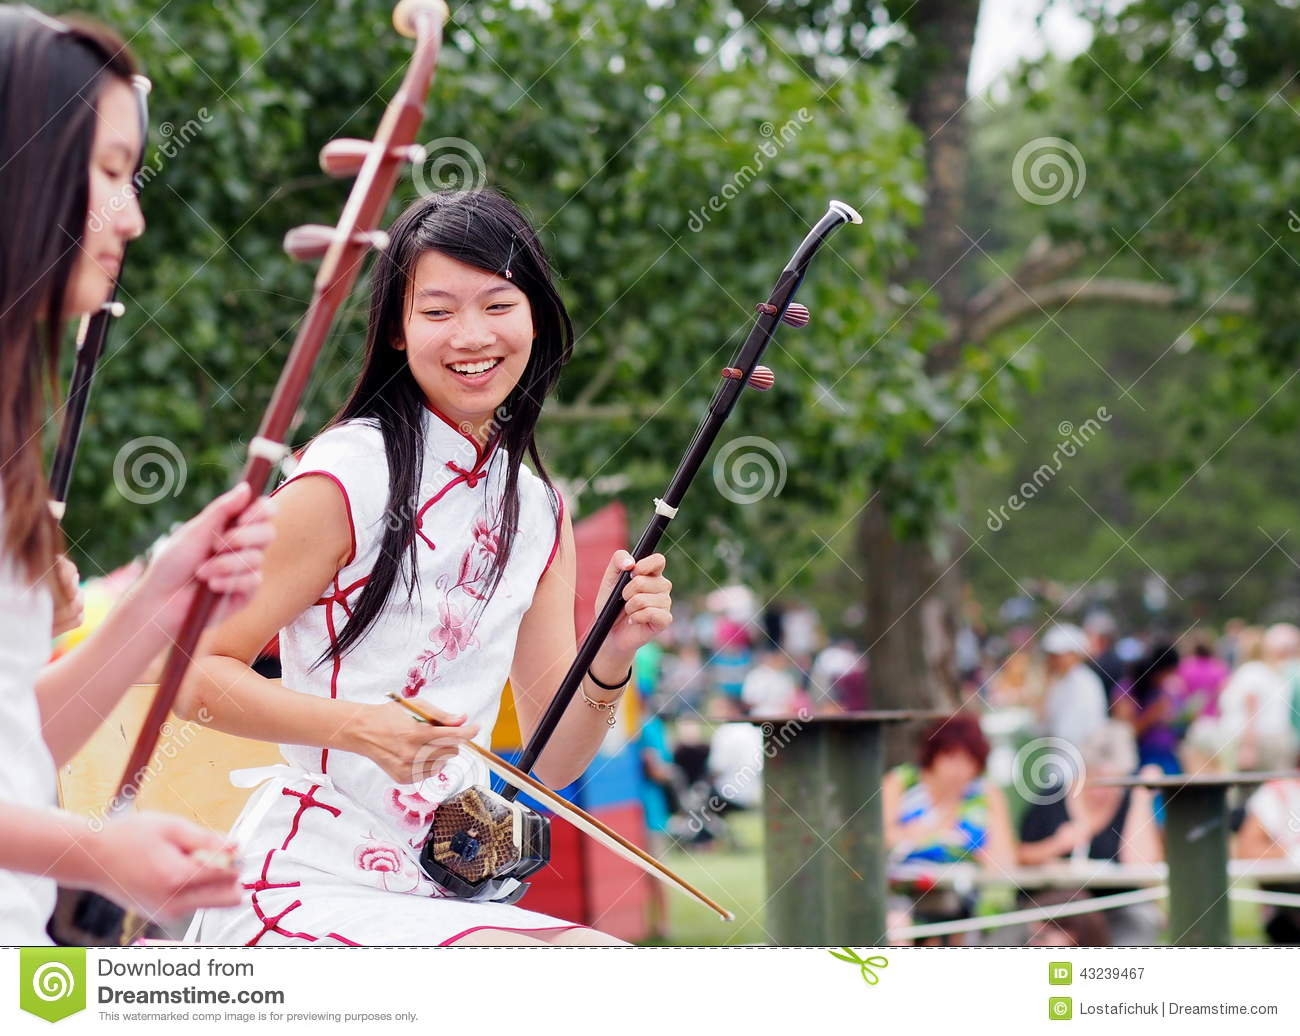 Amazon.com: How to Play Erhu, the Chinese Violin: The ...